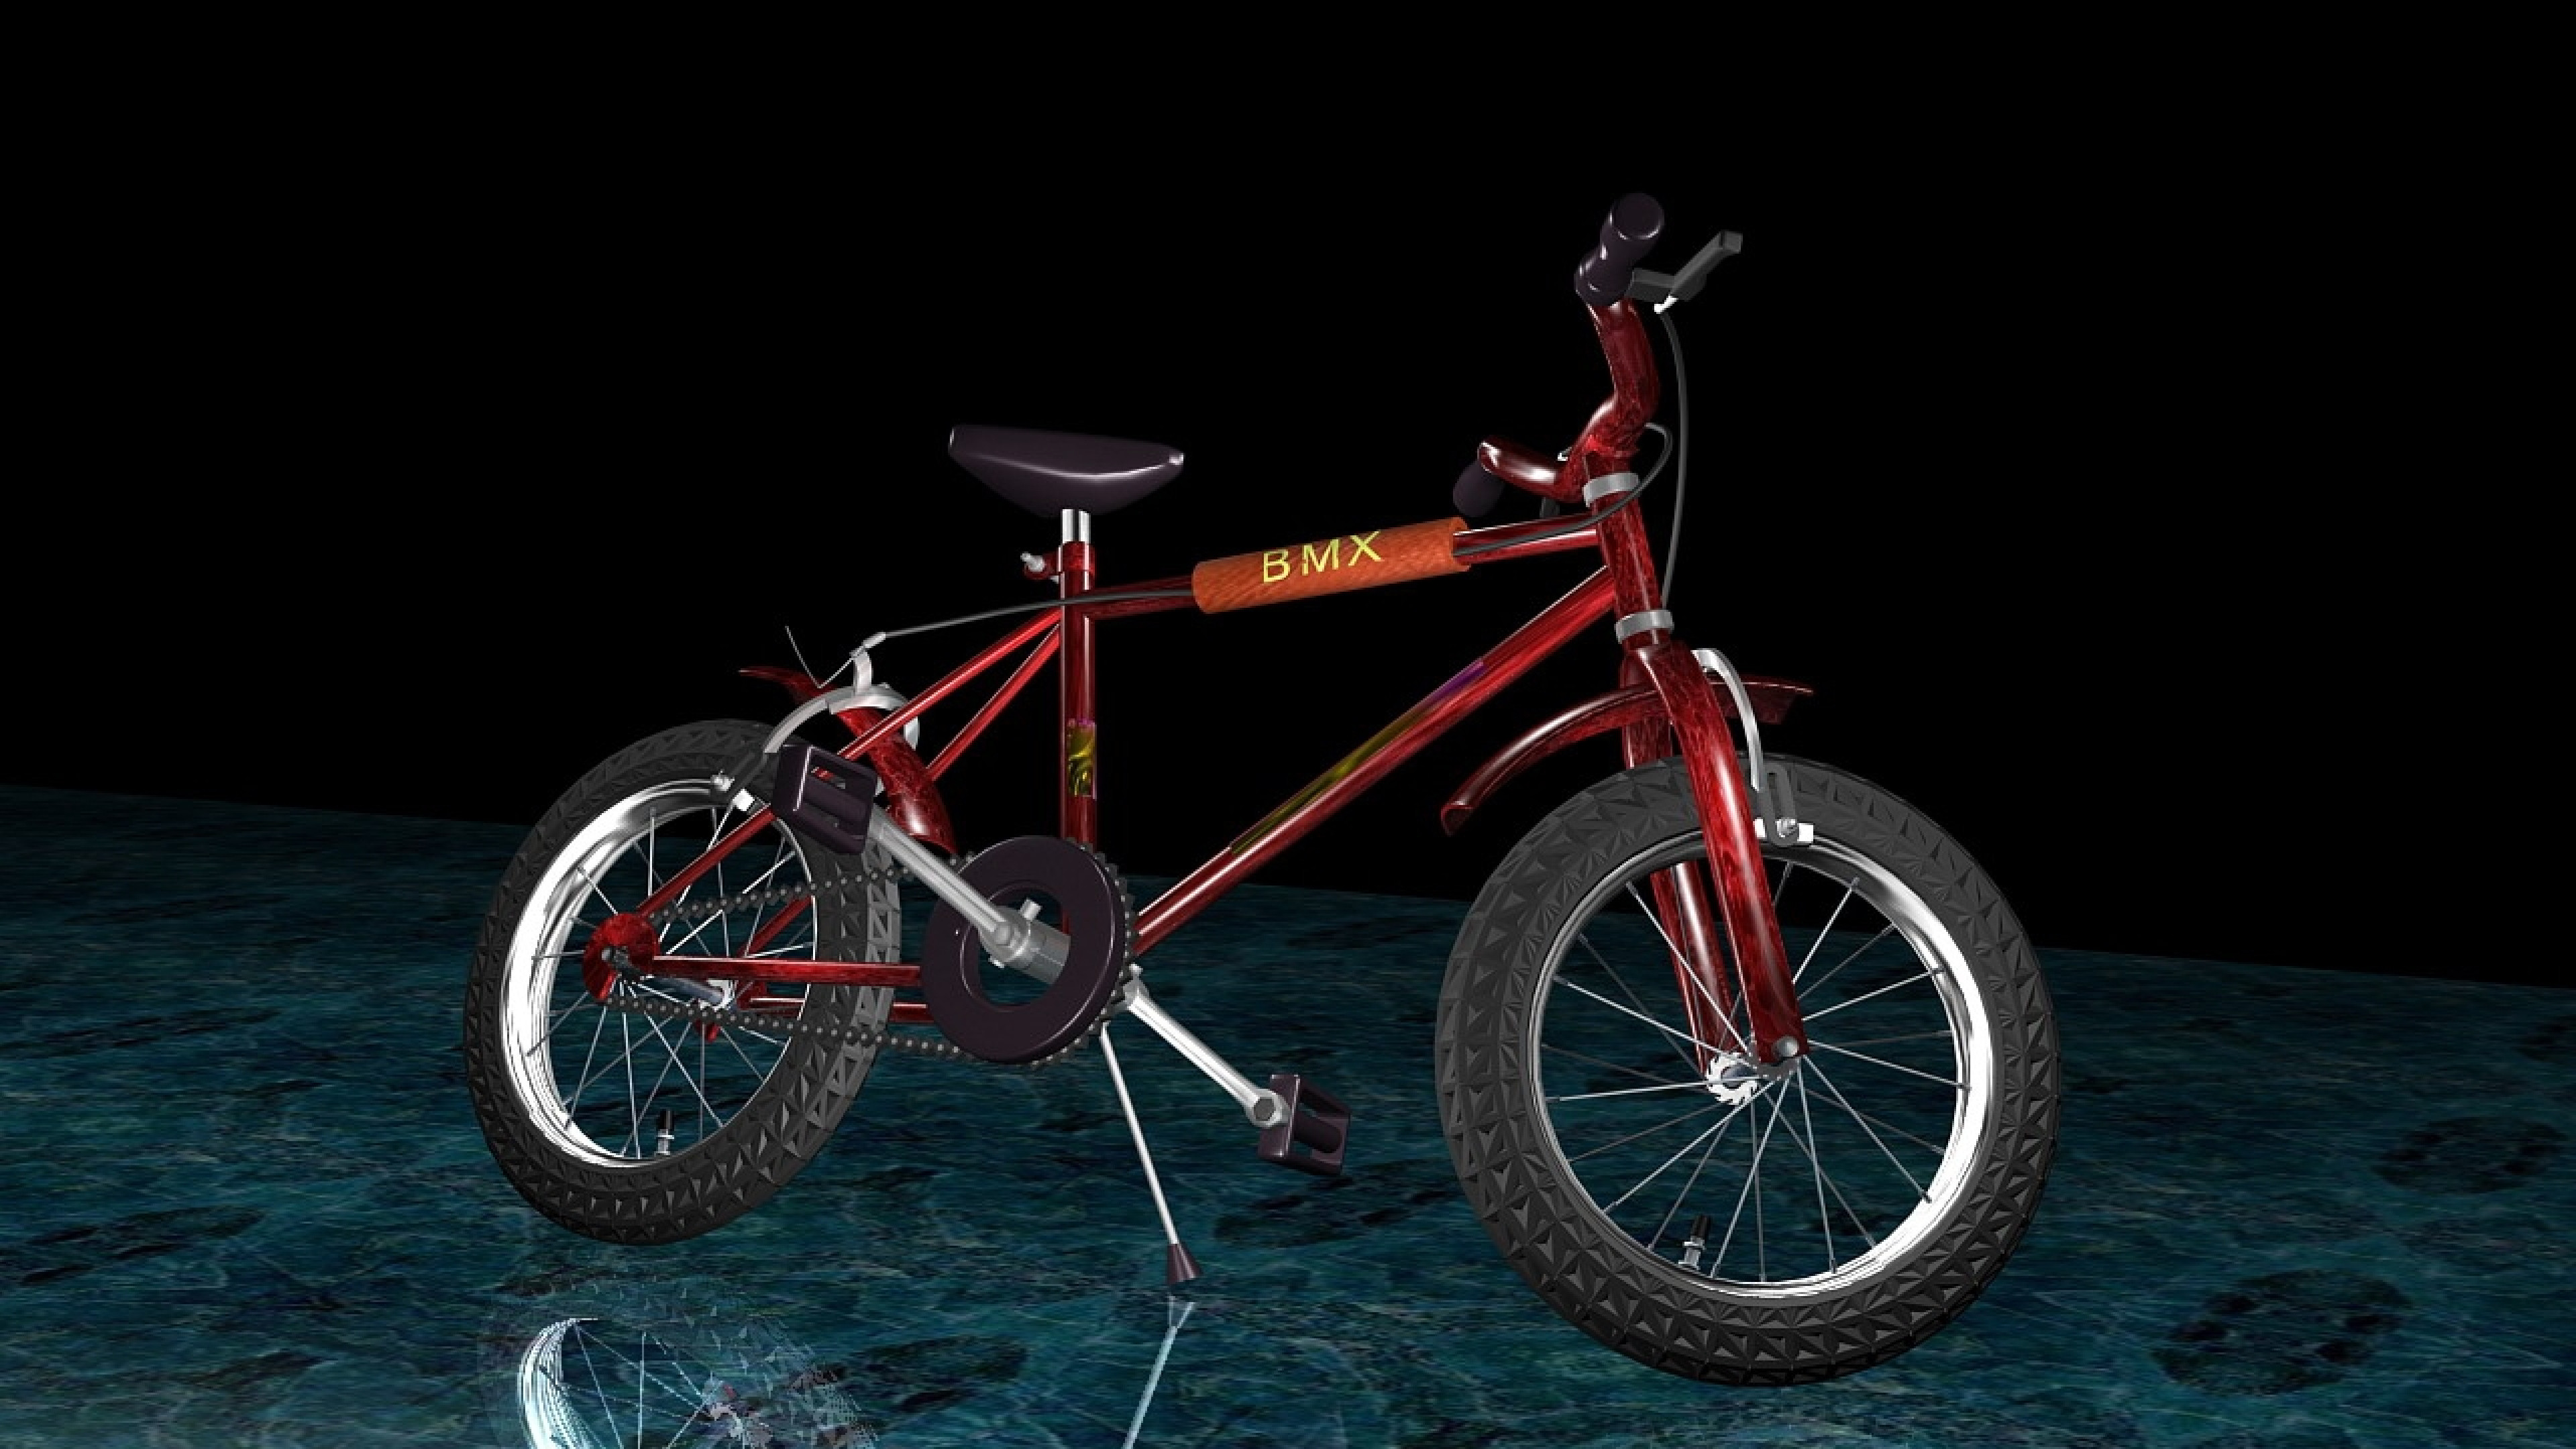 Cool Bmx Wallpapers (65+ Images